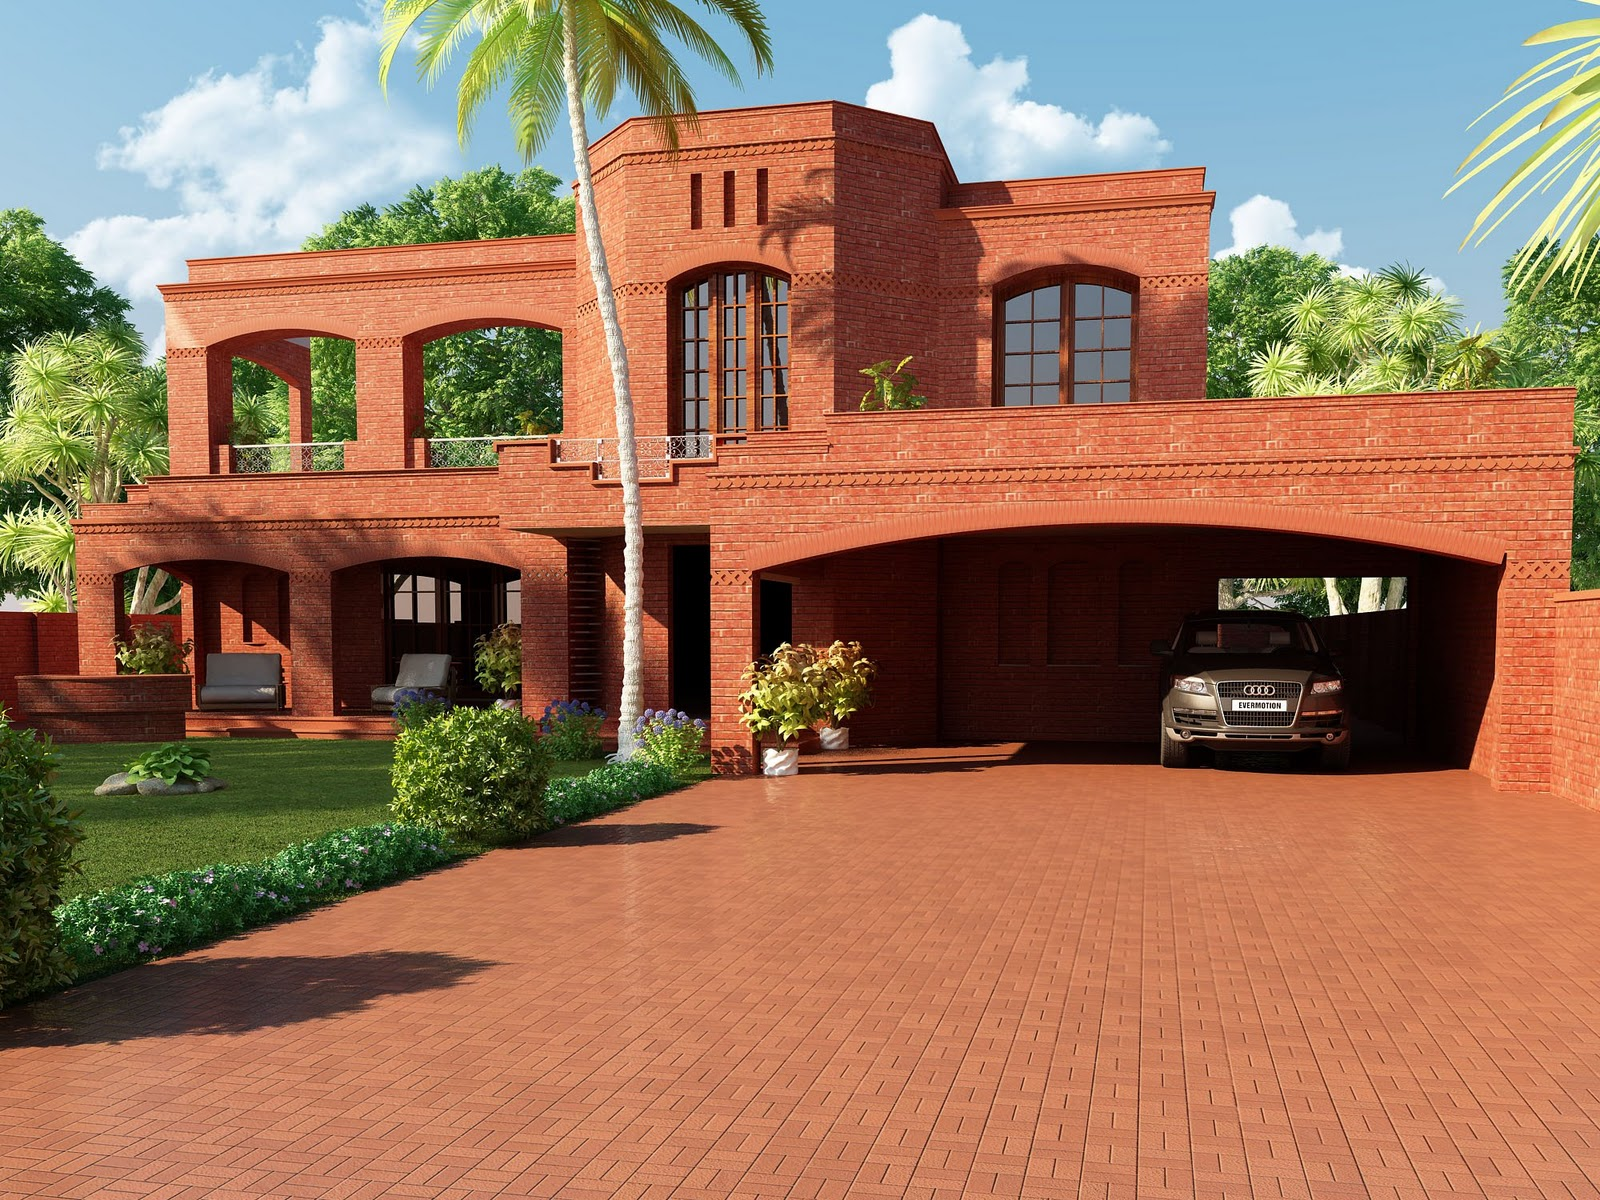 Kerala building construction typical home 3d red themed for Typical house design